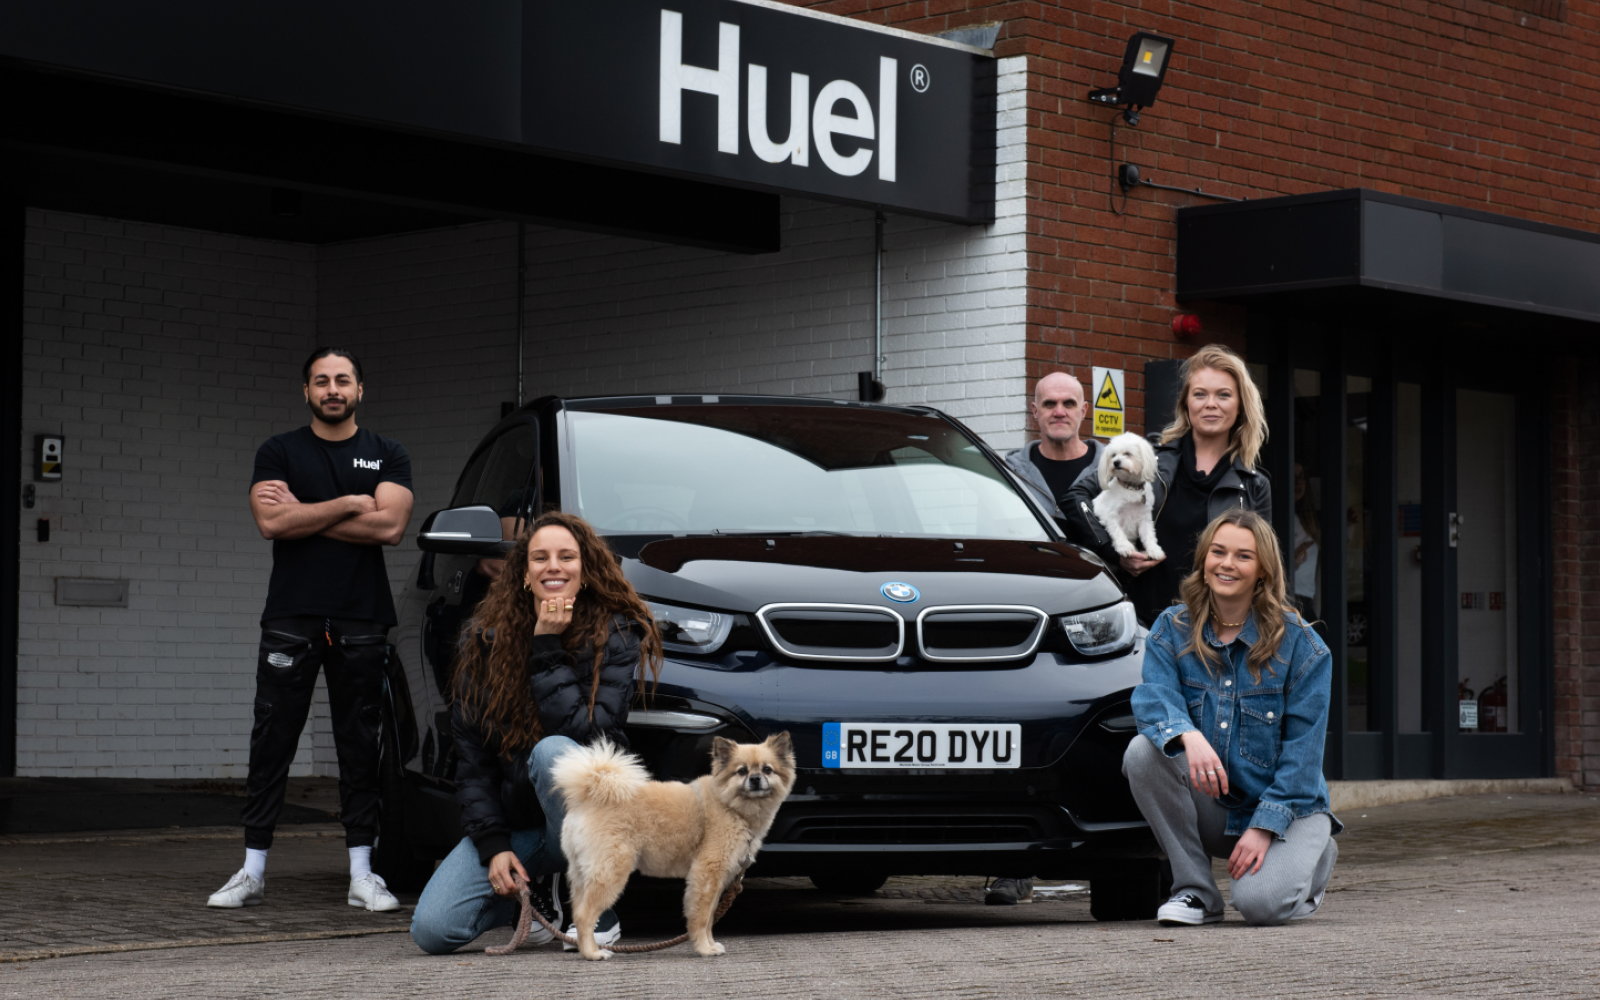 Huel is one of the first 15 companies to sign up to the leasing scheme. Image: Huel.